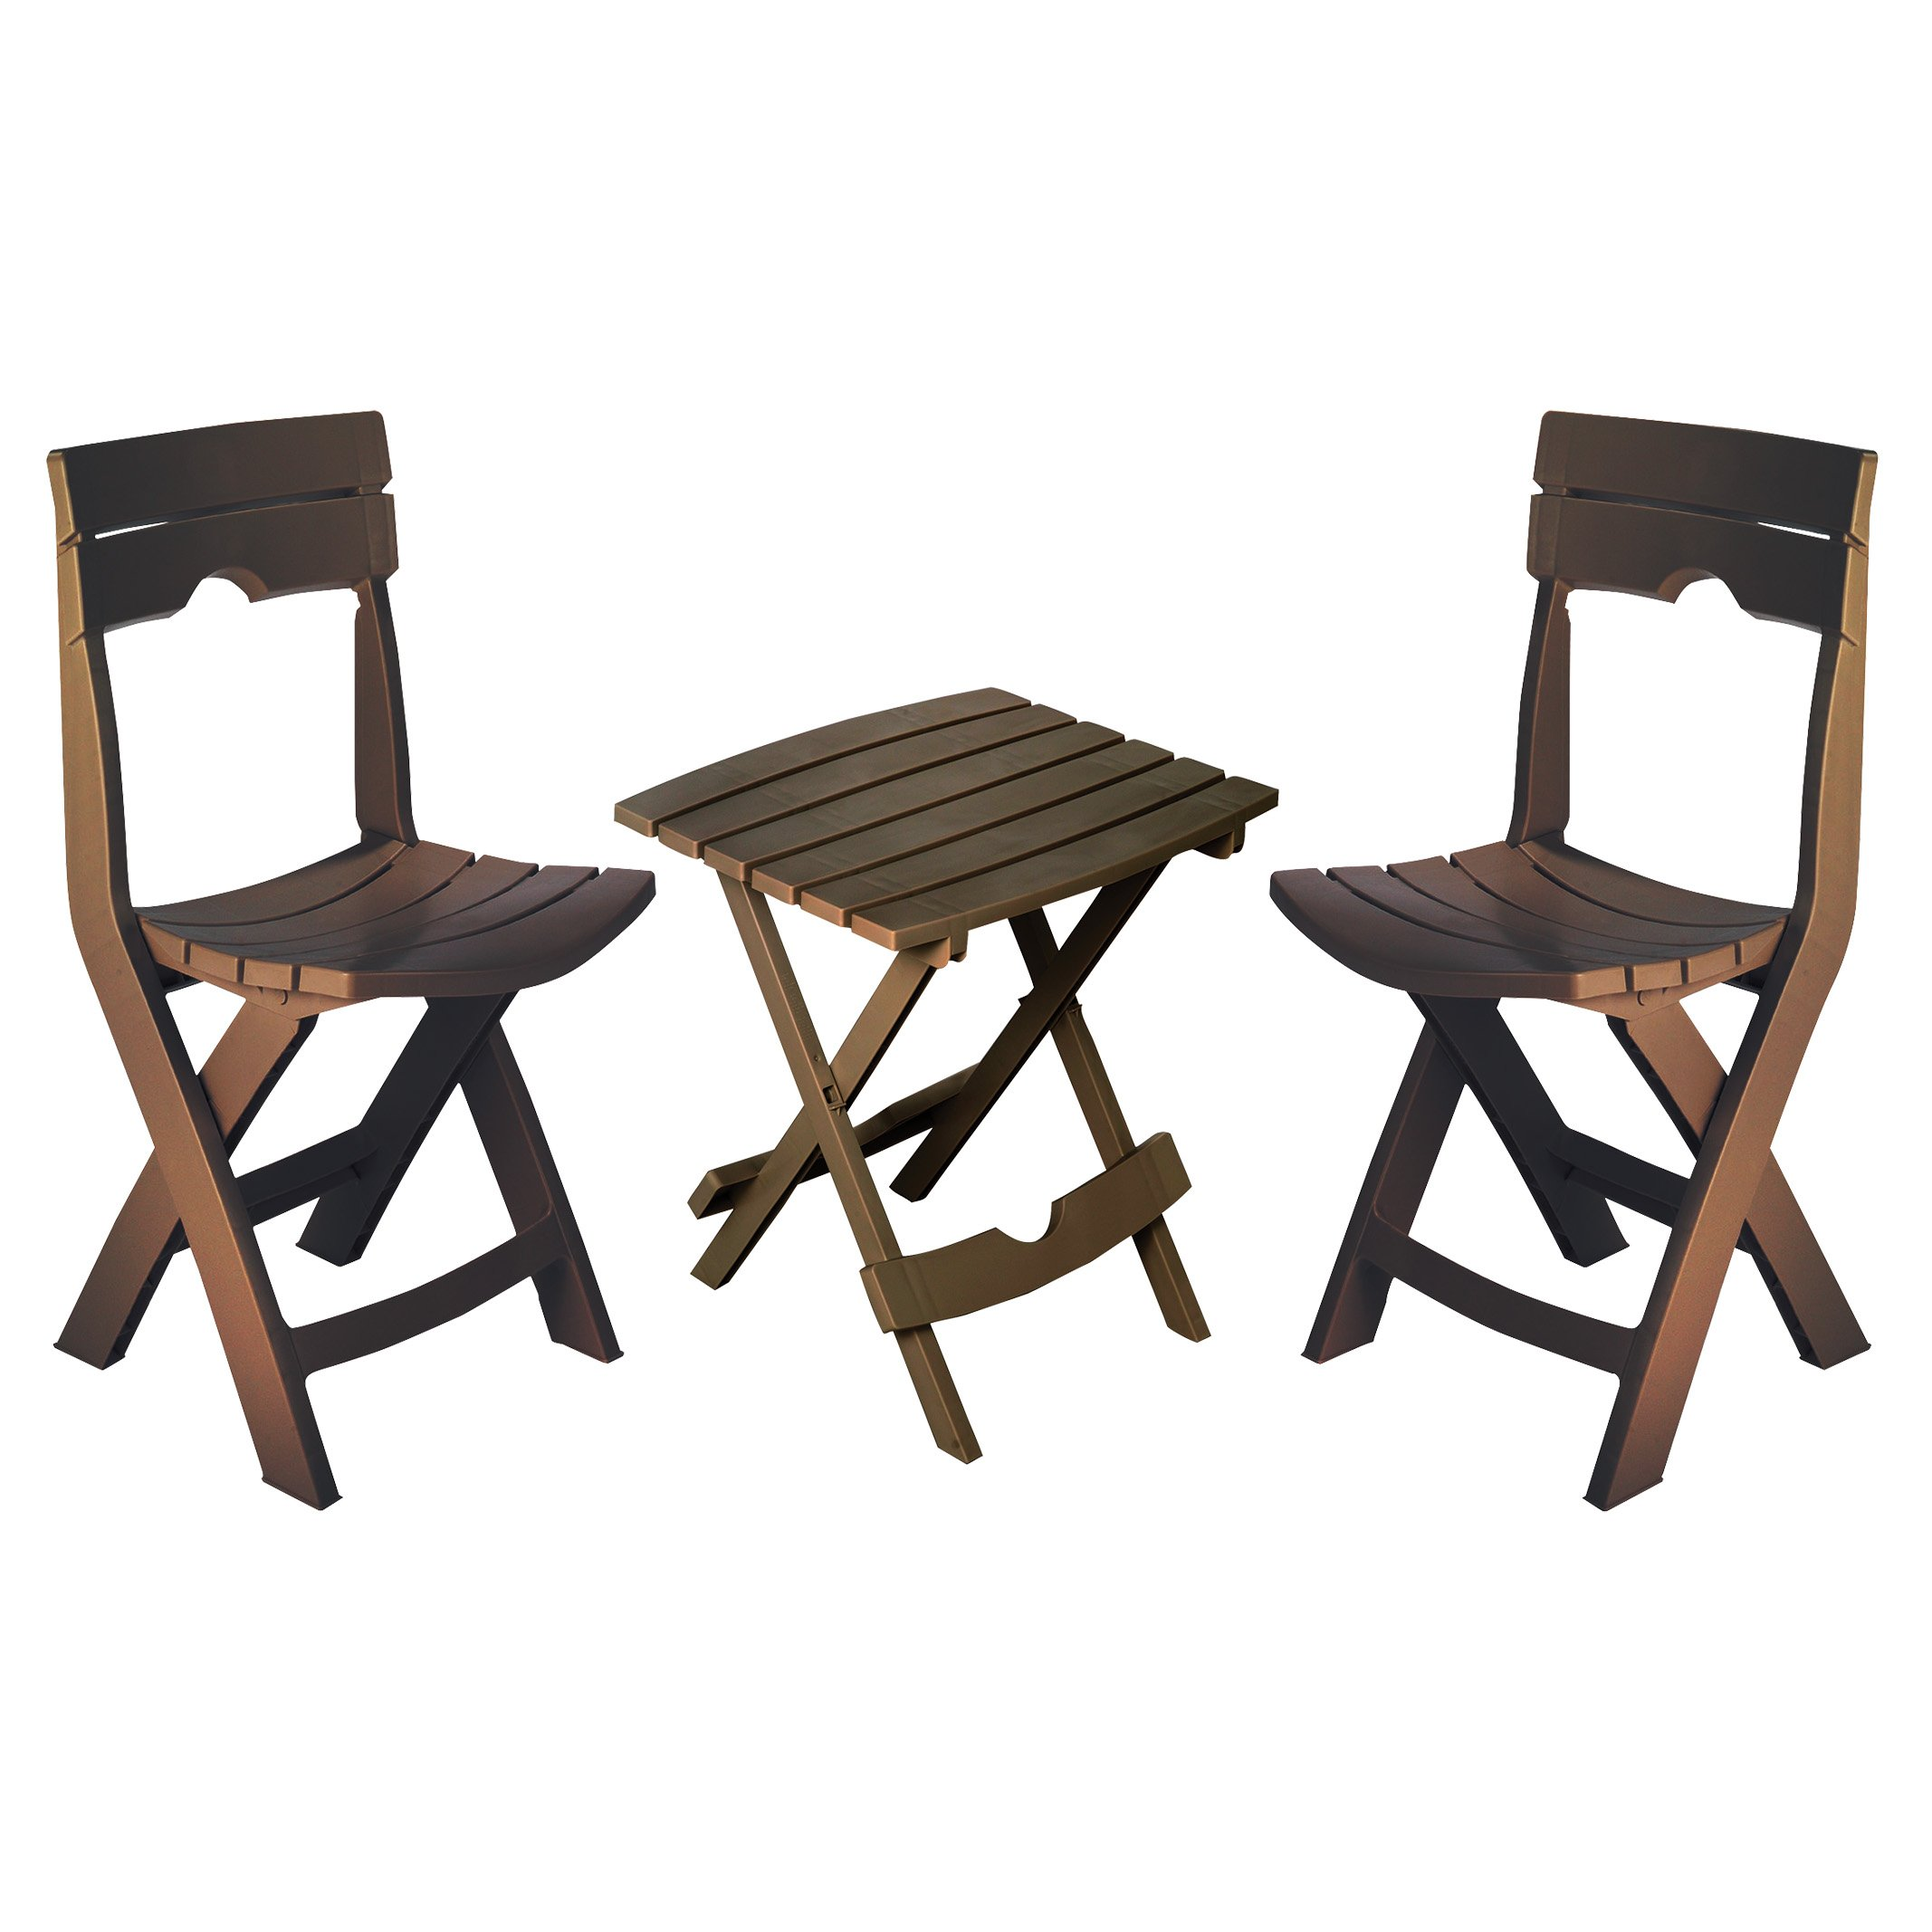 Adams Manufacturing 8595-60-4731 Quik-Fold Conversation Set, Earth Brown by Adams Manufacturing